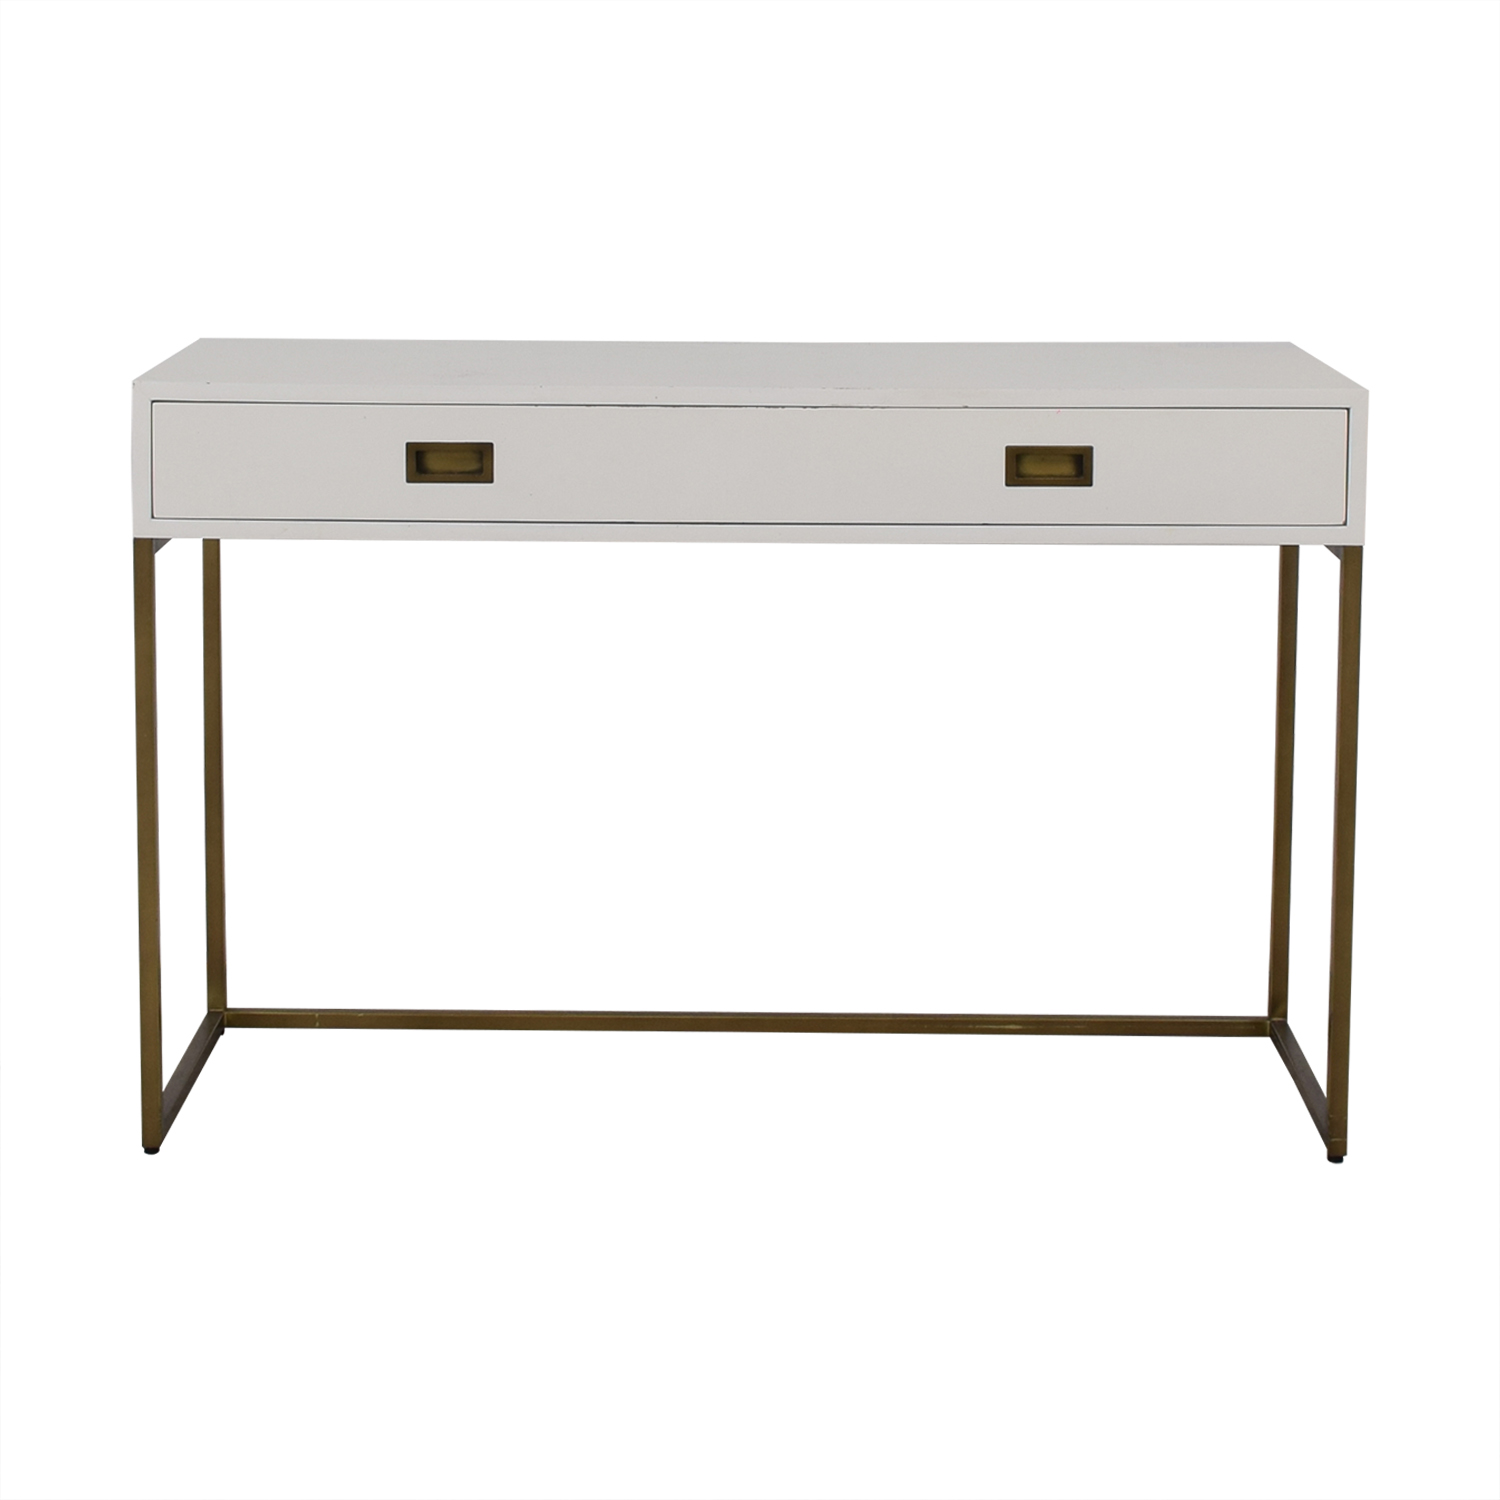 Restoration Hardware Avalon Desk sale